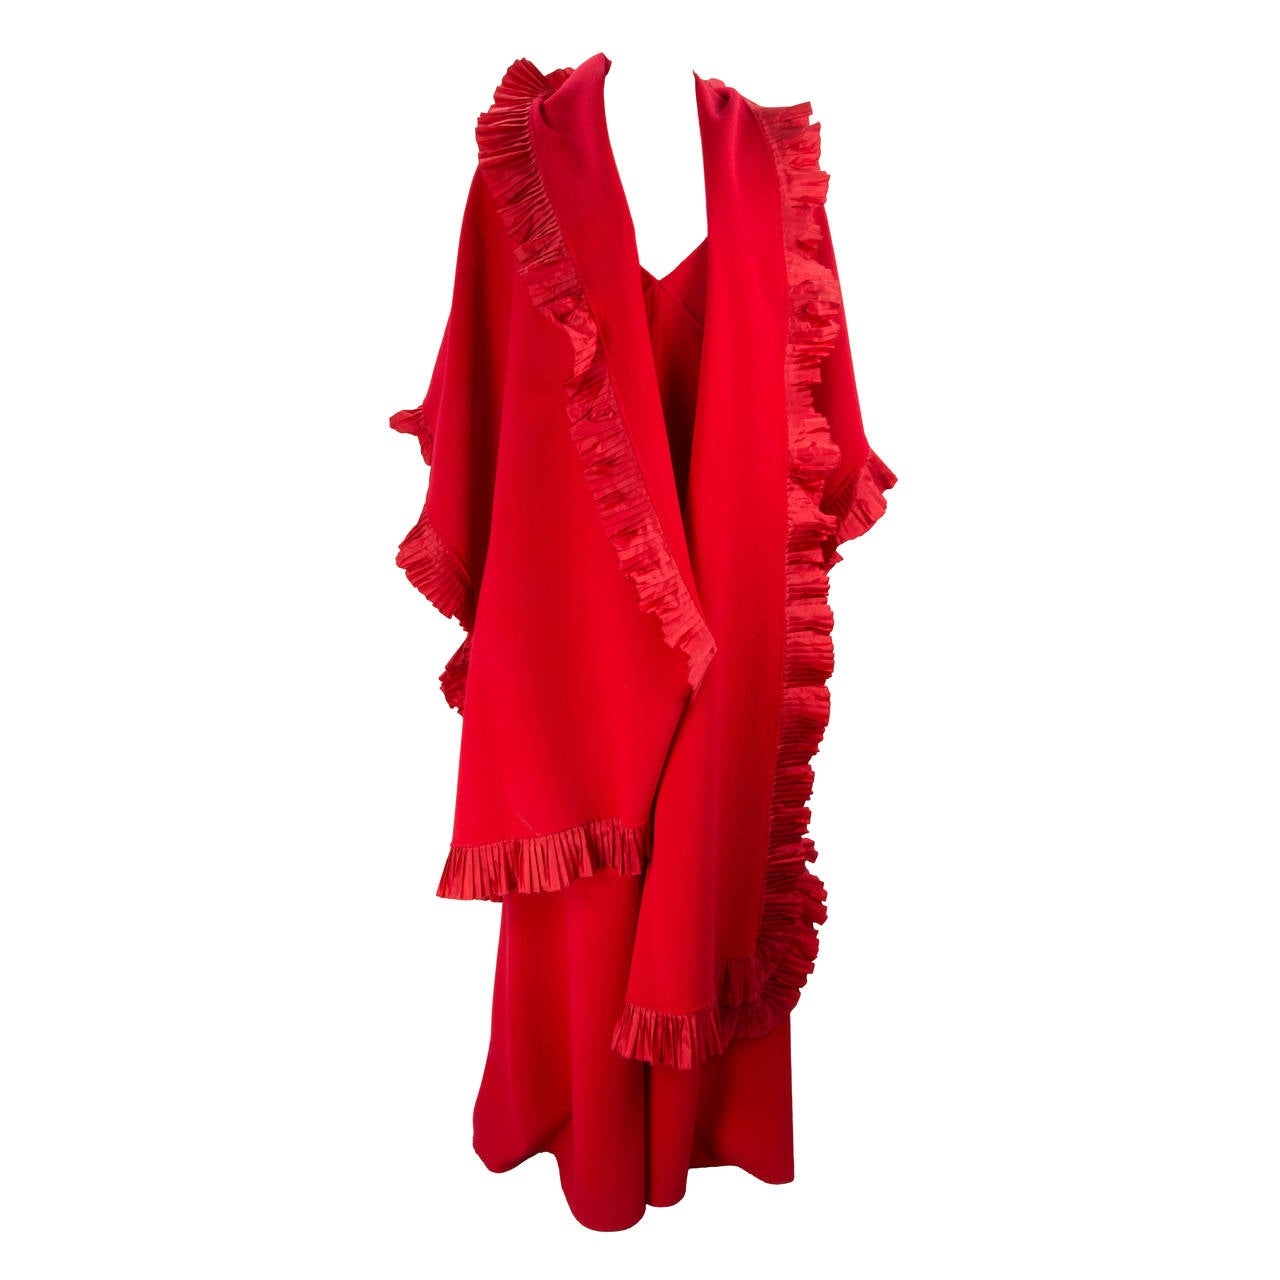 Sensational Serge et Real Long Red Dress and Long Shawl